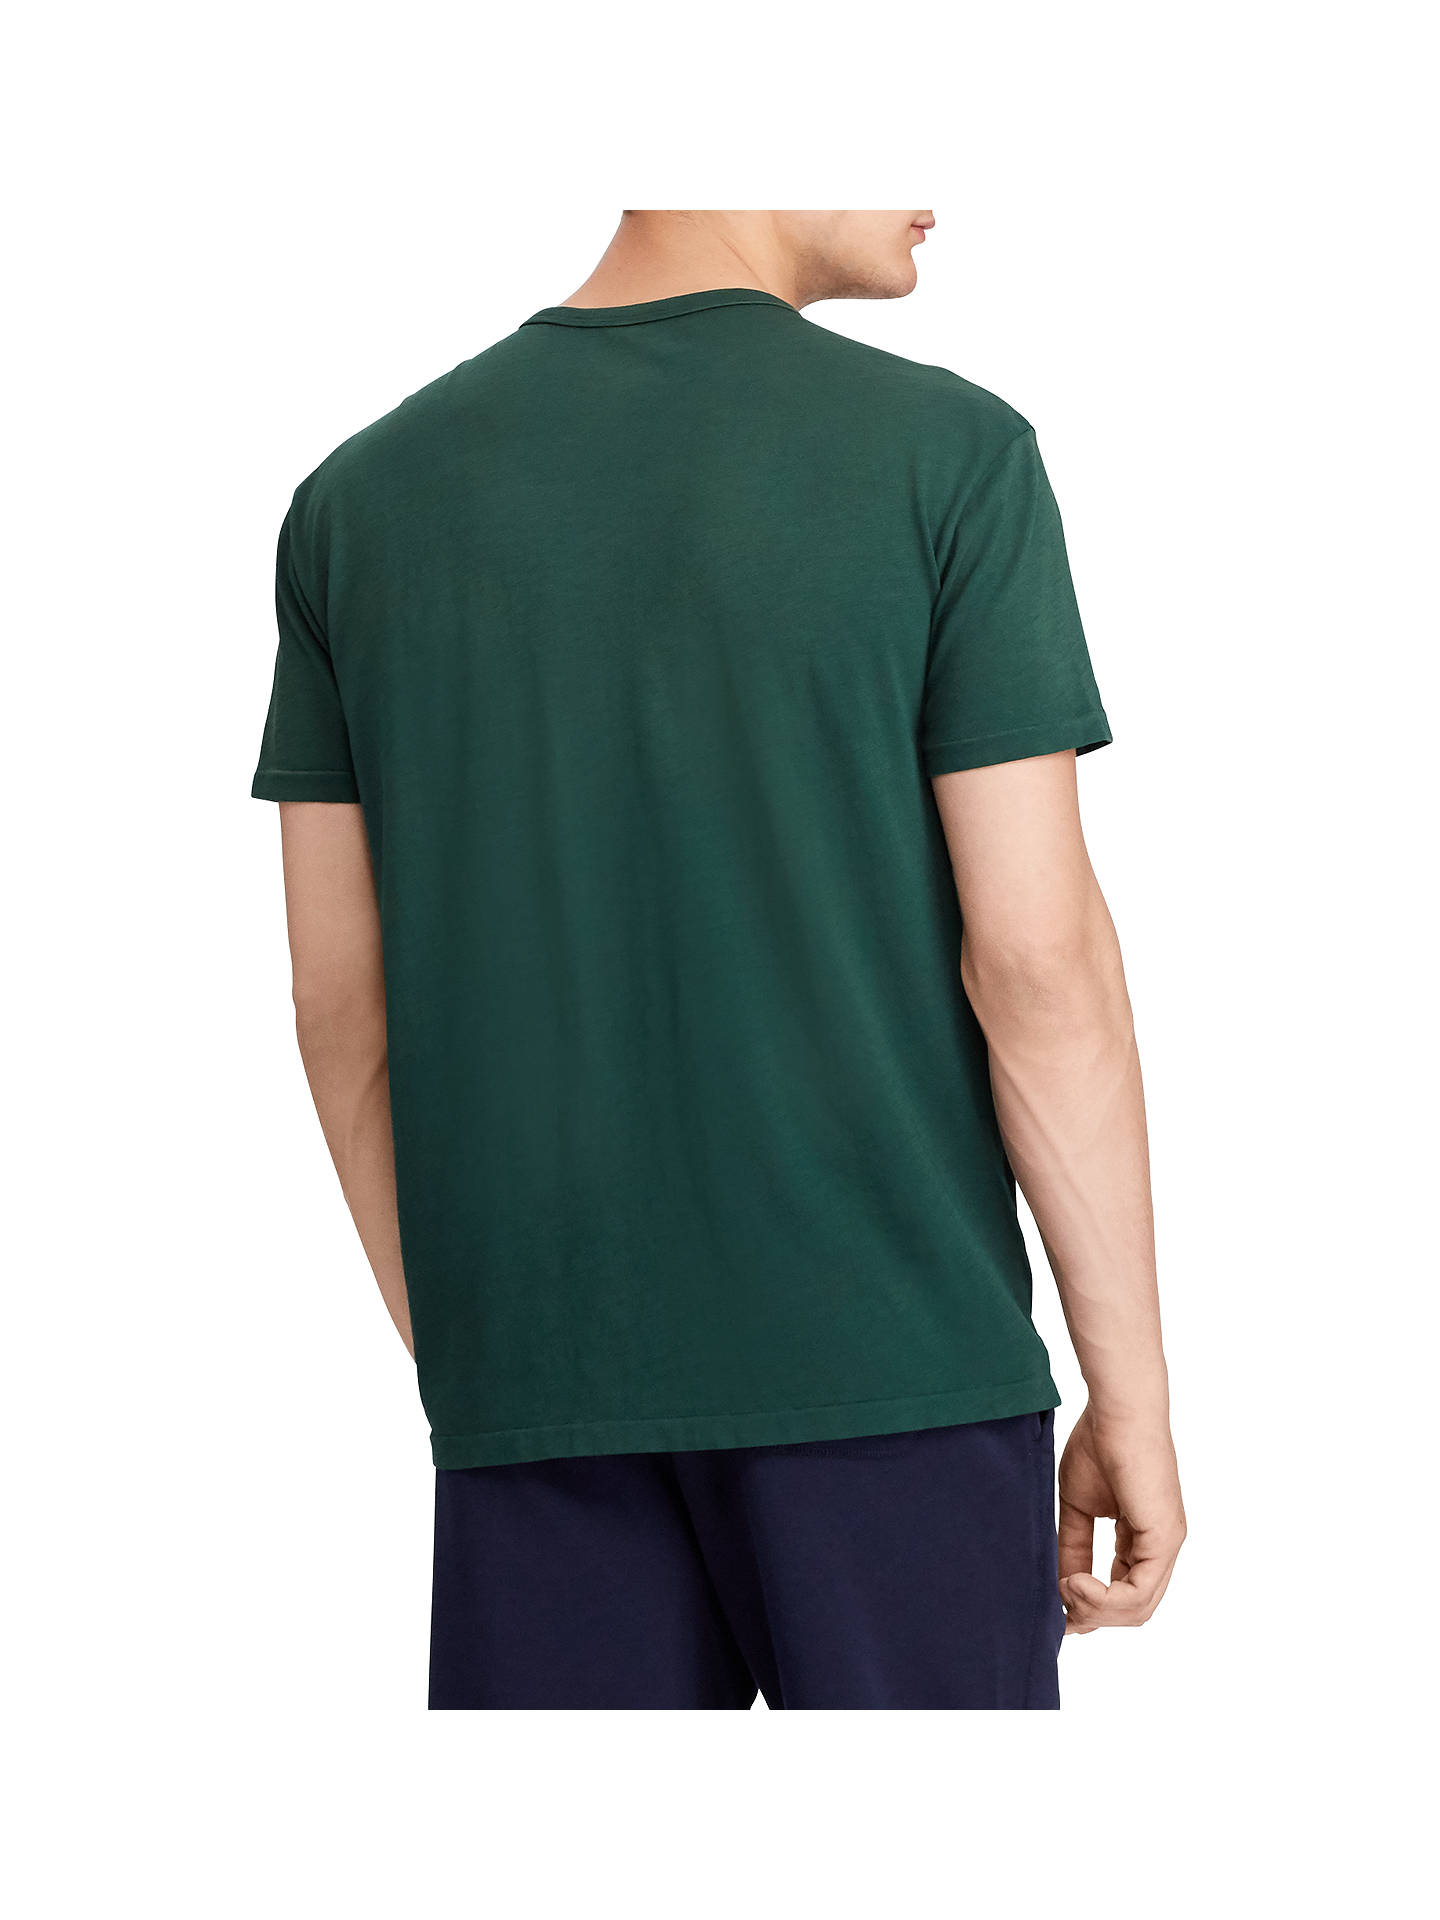 BuyPolo Ralph Lauren Short Sleeve Graphic T-Shirt, College Green, S Online at johnlewis.com